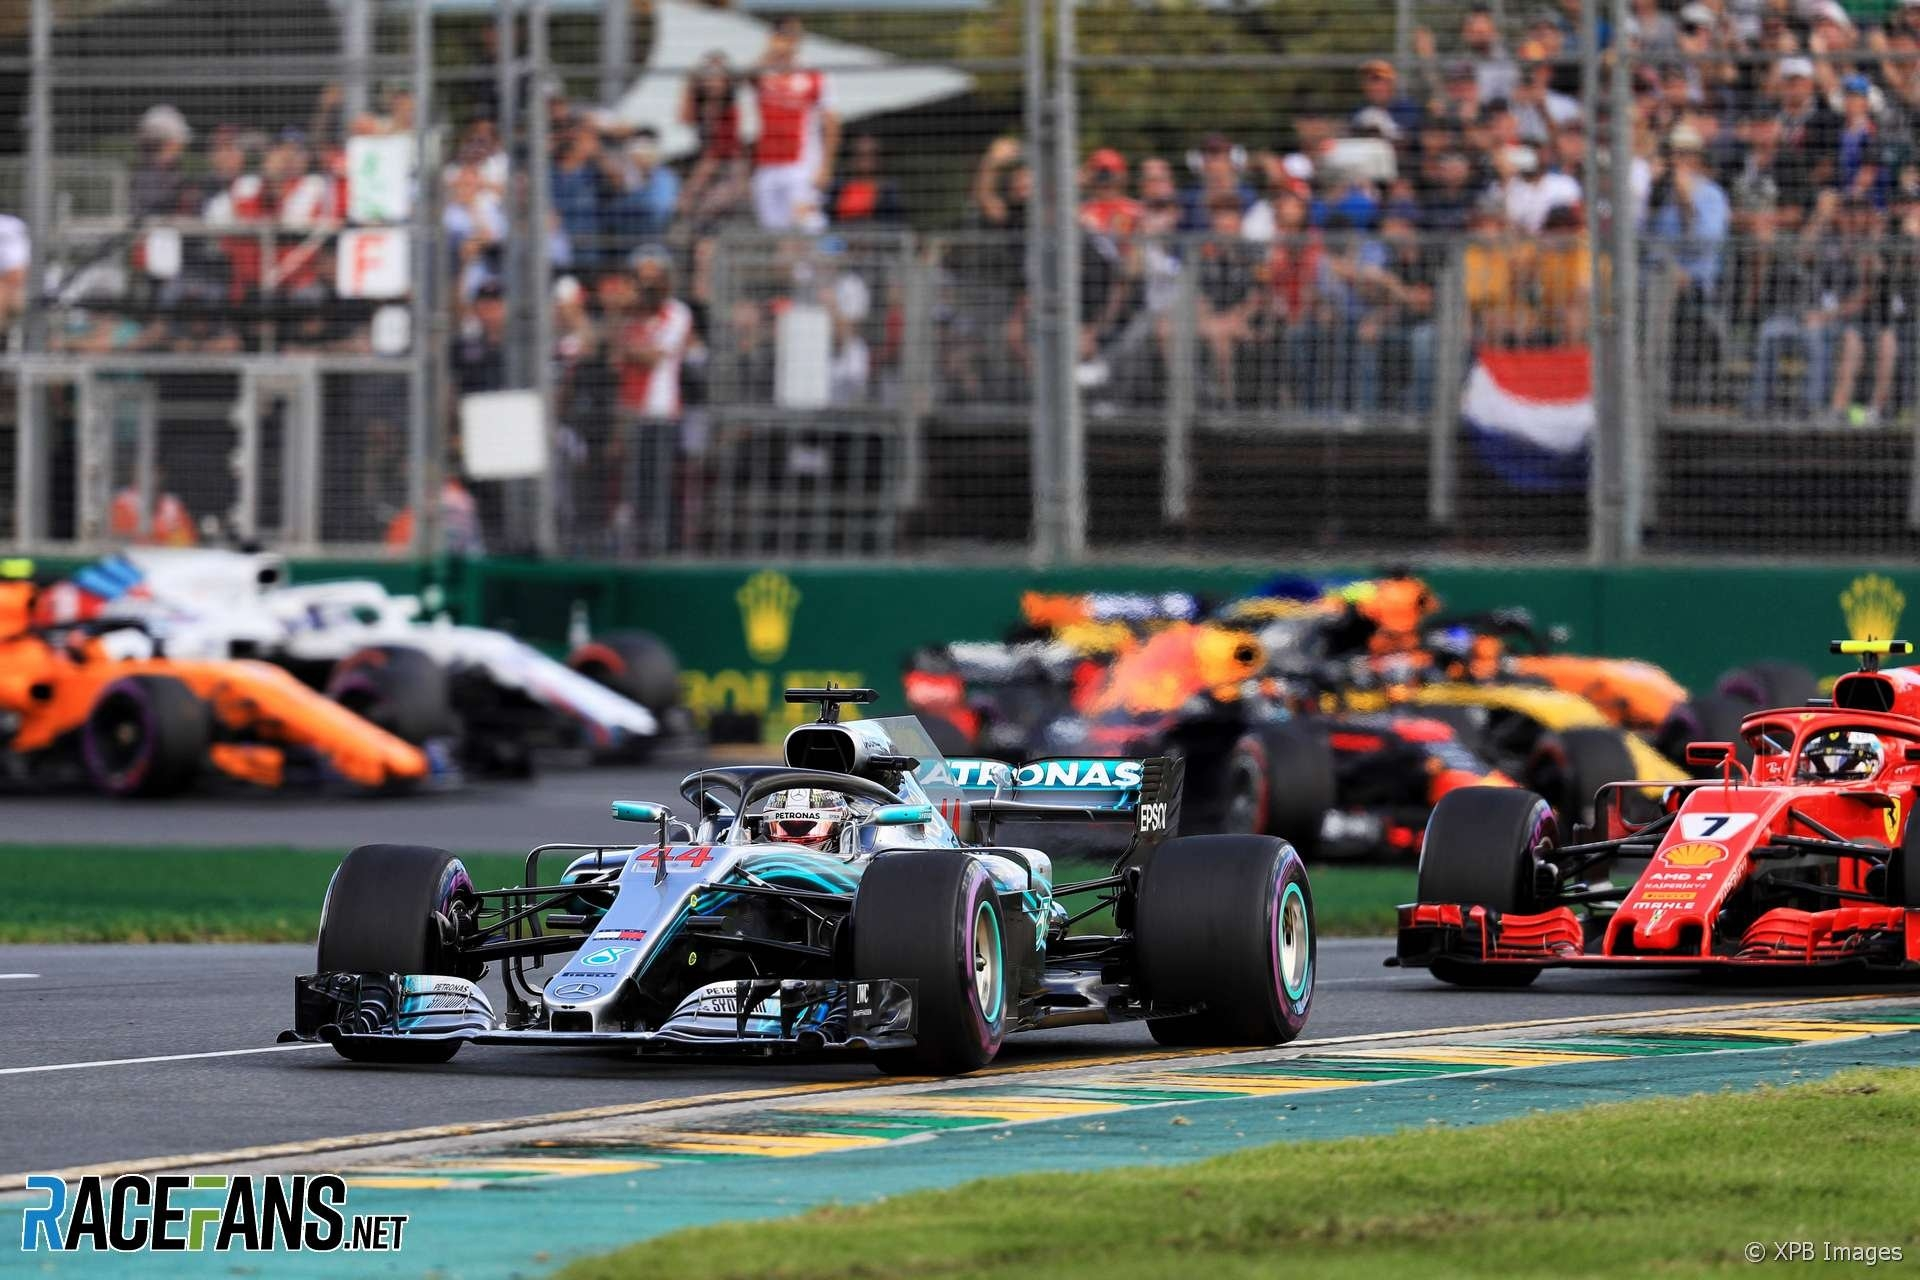 F1 Calendarracefans: Get The Current Formula 1 Race Schedule Formula E Calendar 2019 Ical